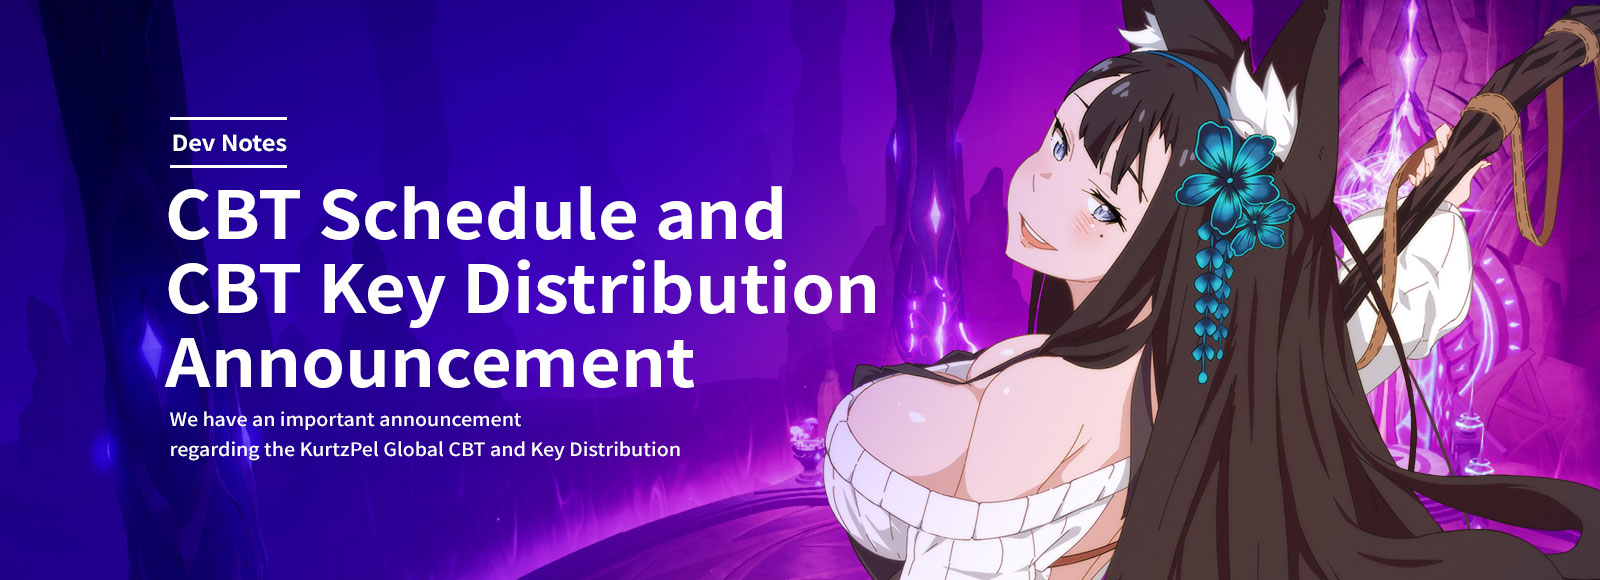 Dev Note : CBT Schedule and CBT Key Distribution Announcement